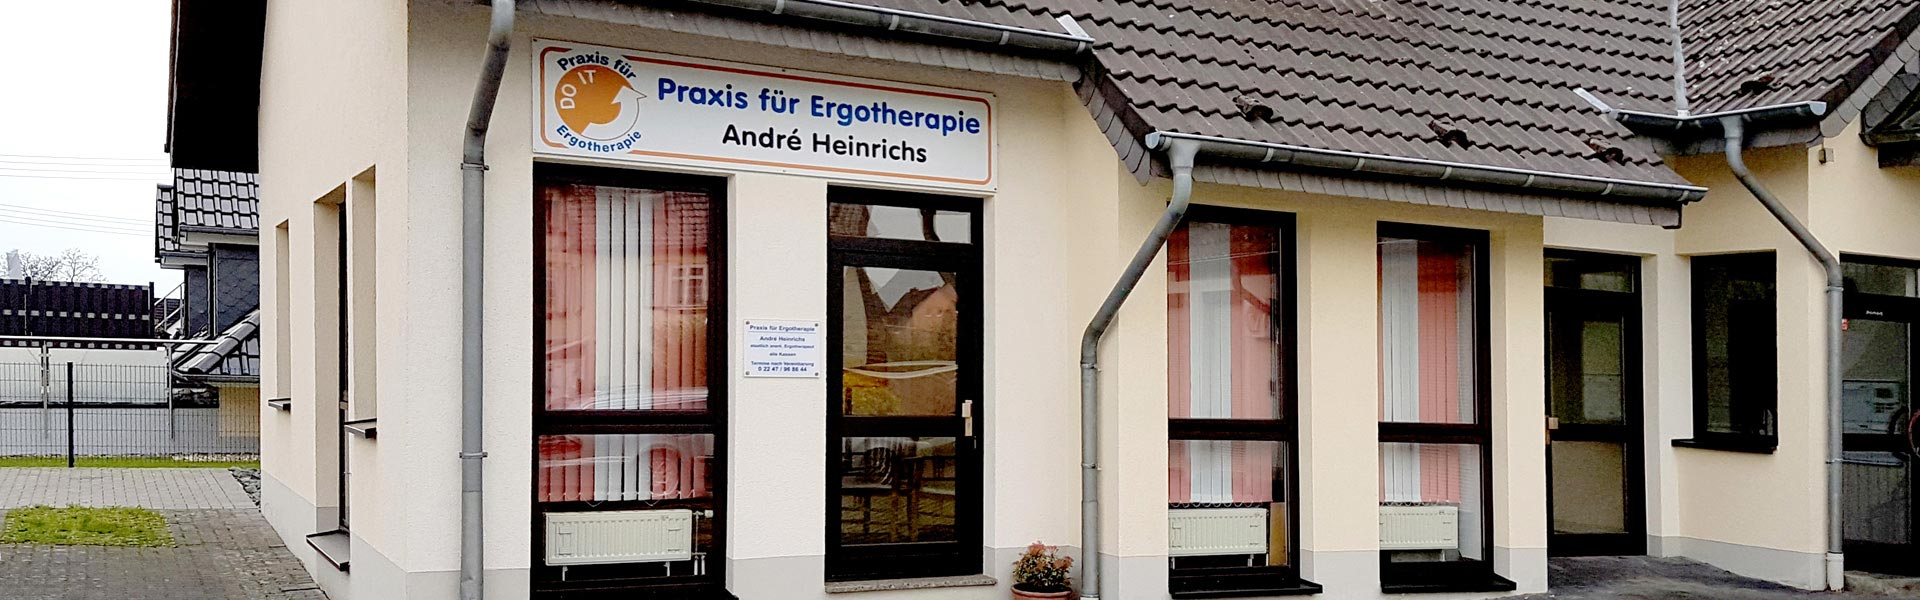 Praxis für Ergotherapie DO IT in Neunkirchen-Seelscheid